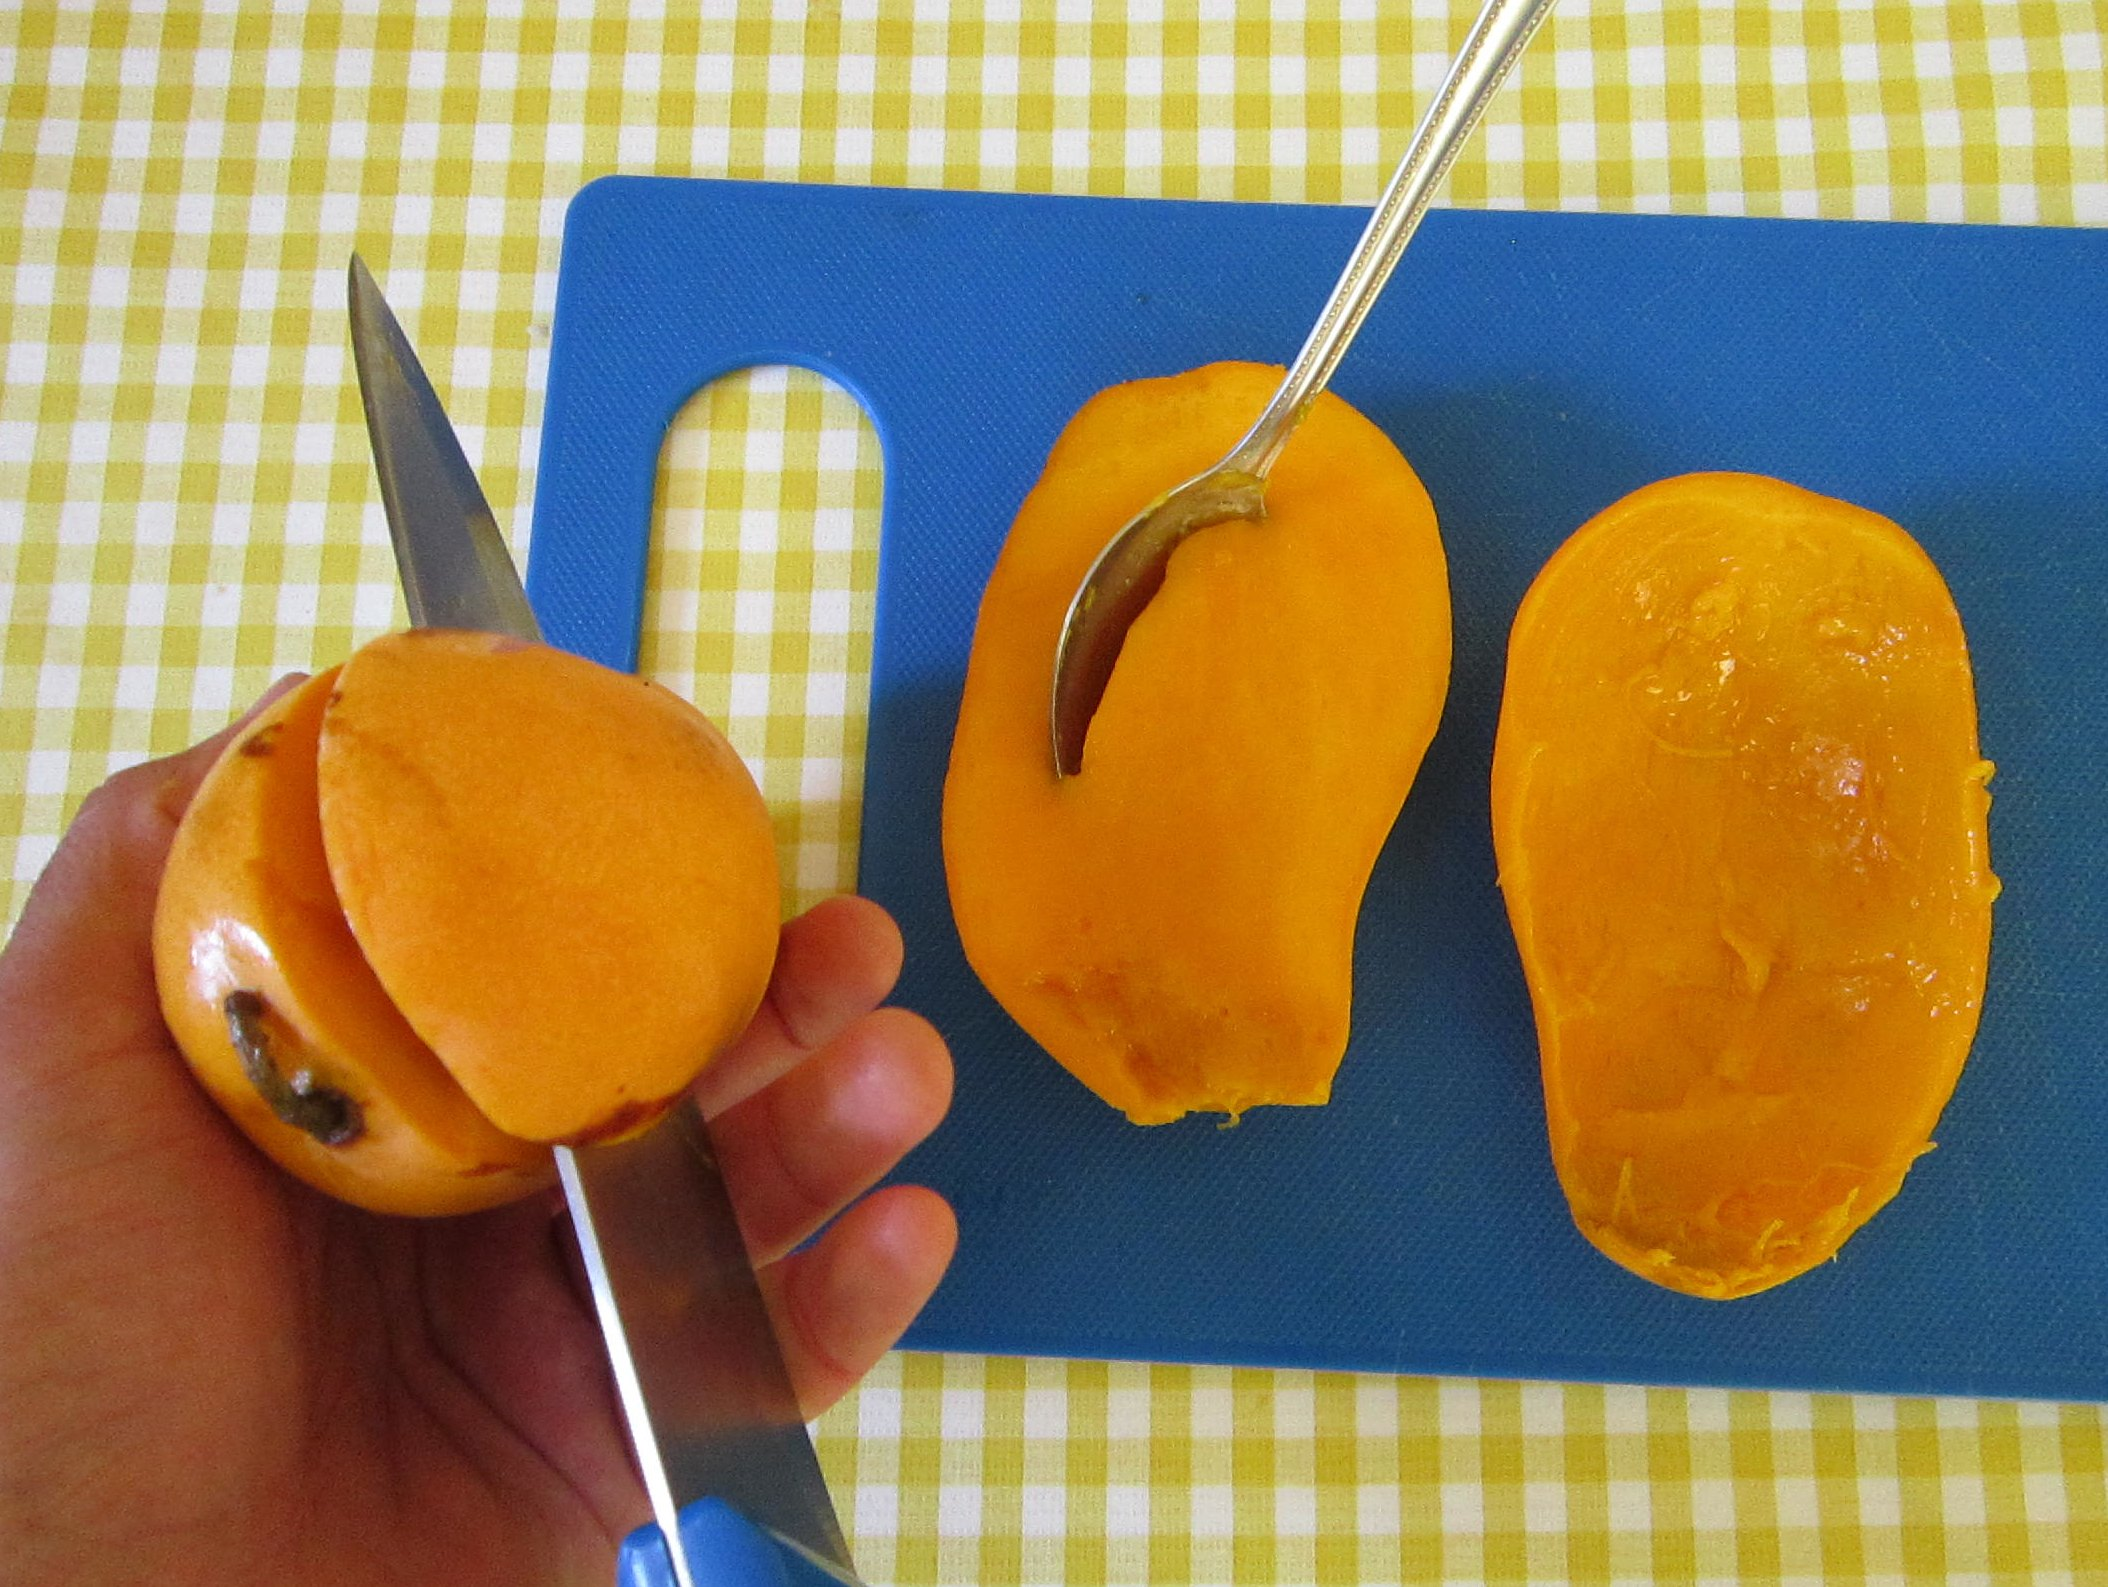 How To Cut A Mango And Get Deported From Spain No Hay Bronca How To Properly